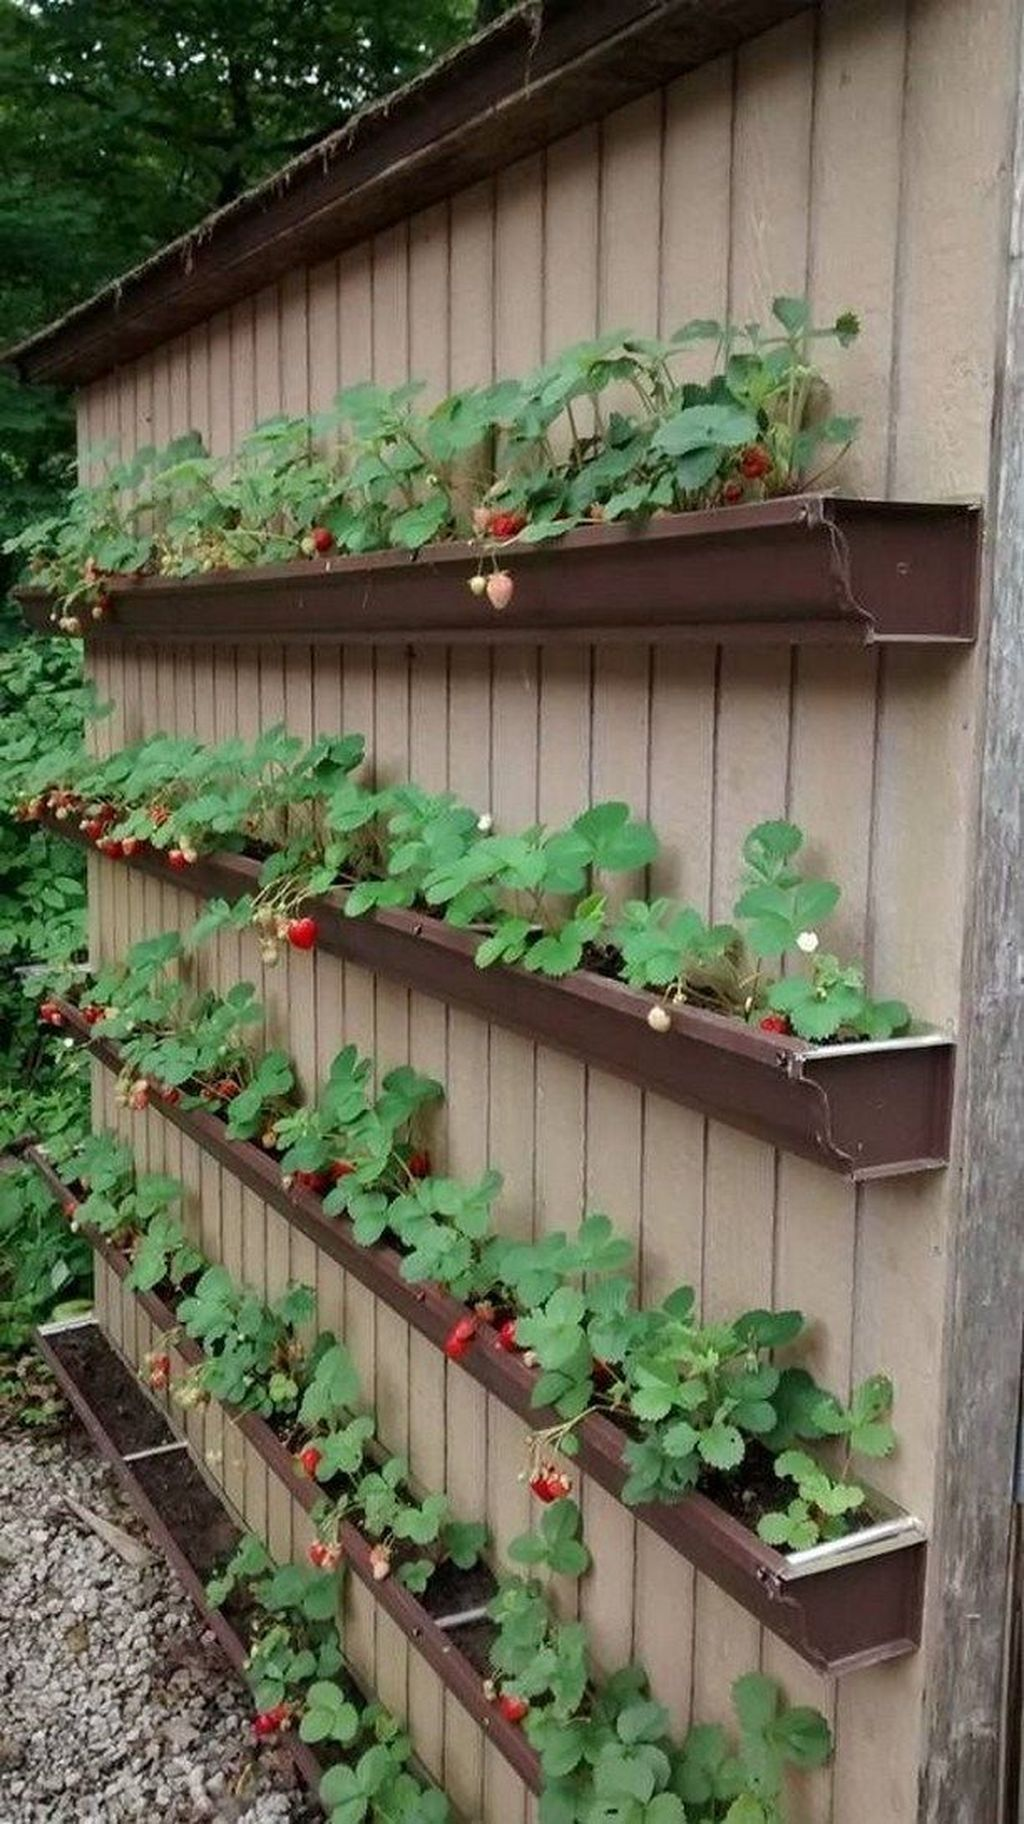 20+ Comfy Diy Raised Garden Bed Ideas That Looks Cool – Raised garden beds diy